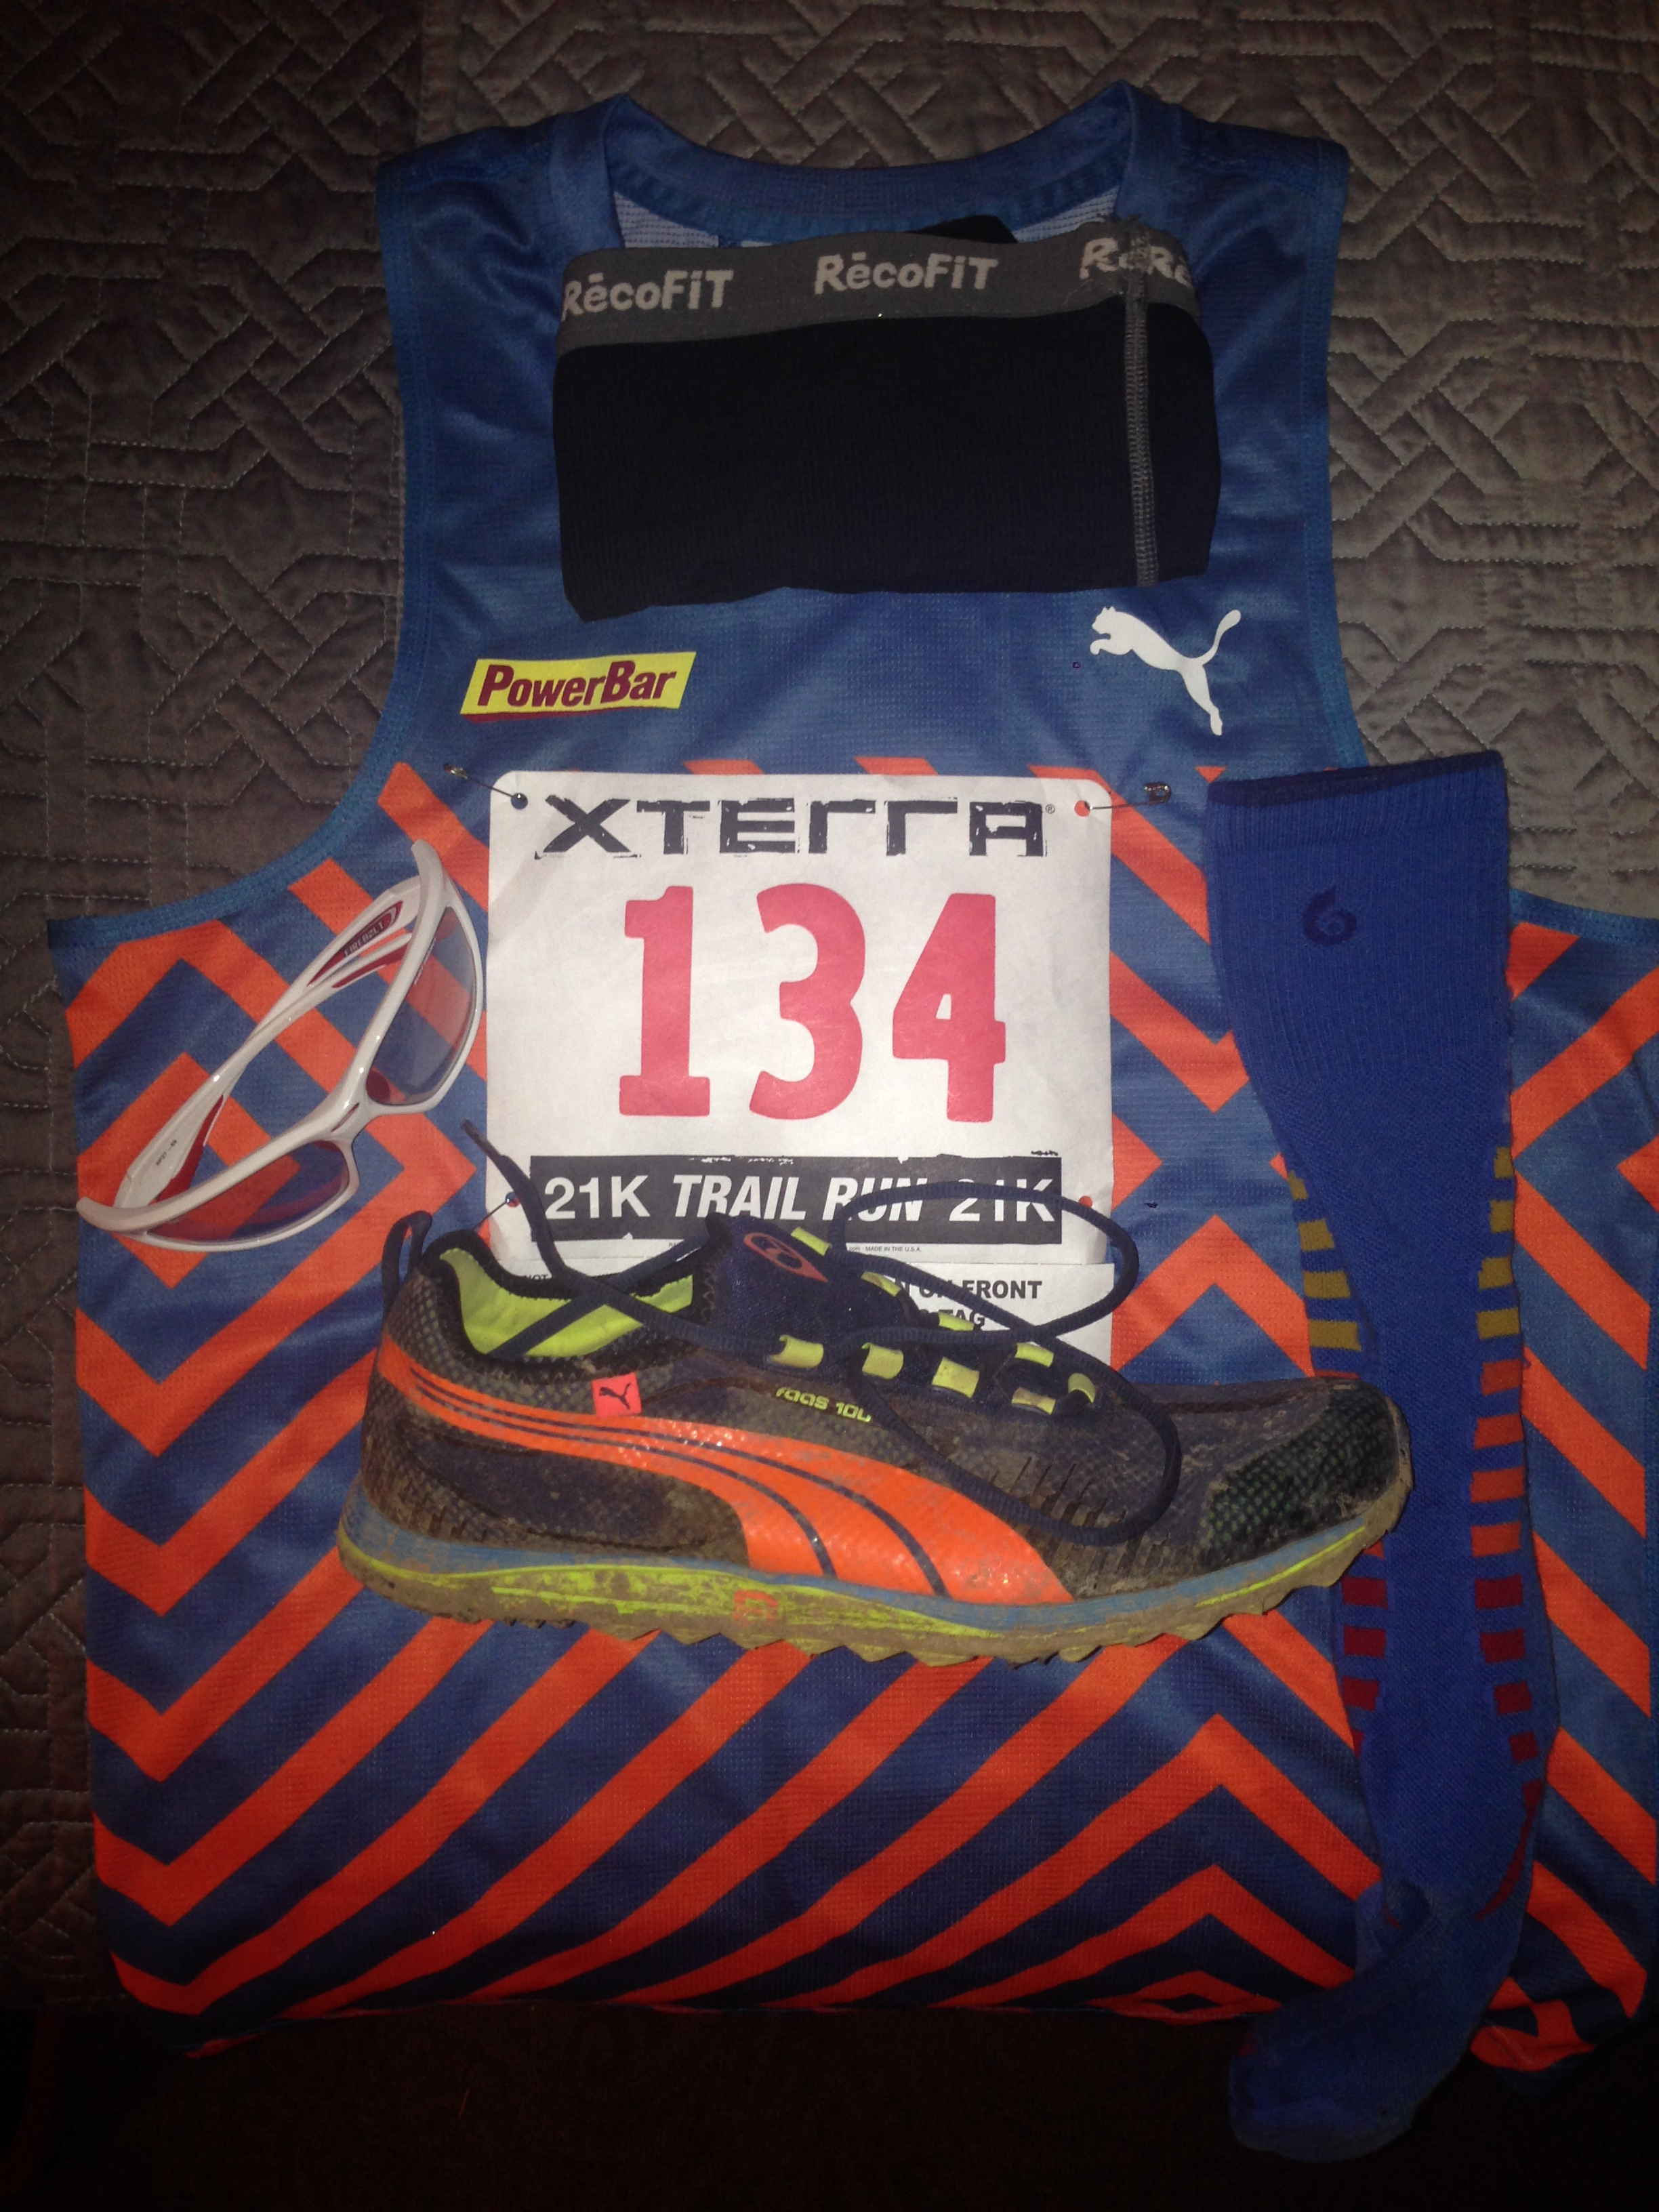 Race kit! Ready to test out my shoes:  PUMA FAAS 100 TR